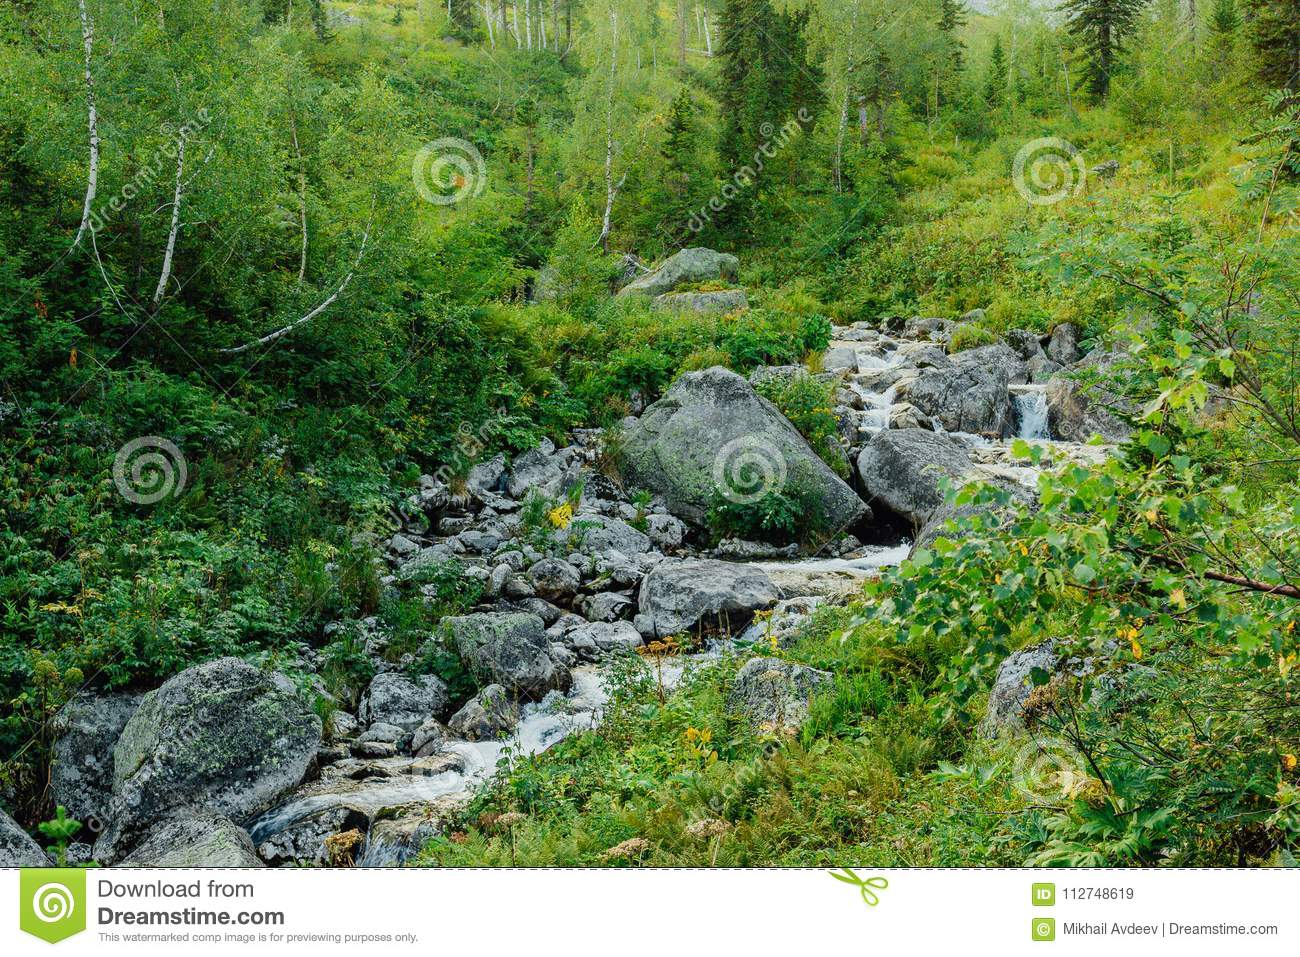 Mountain stream in the forest.